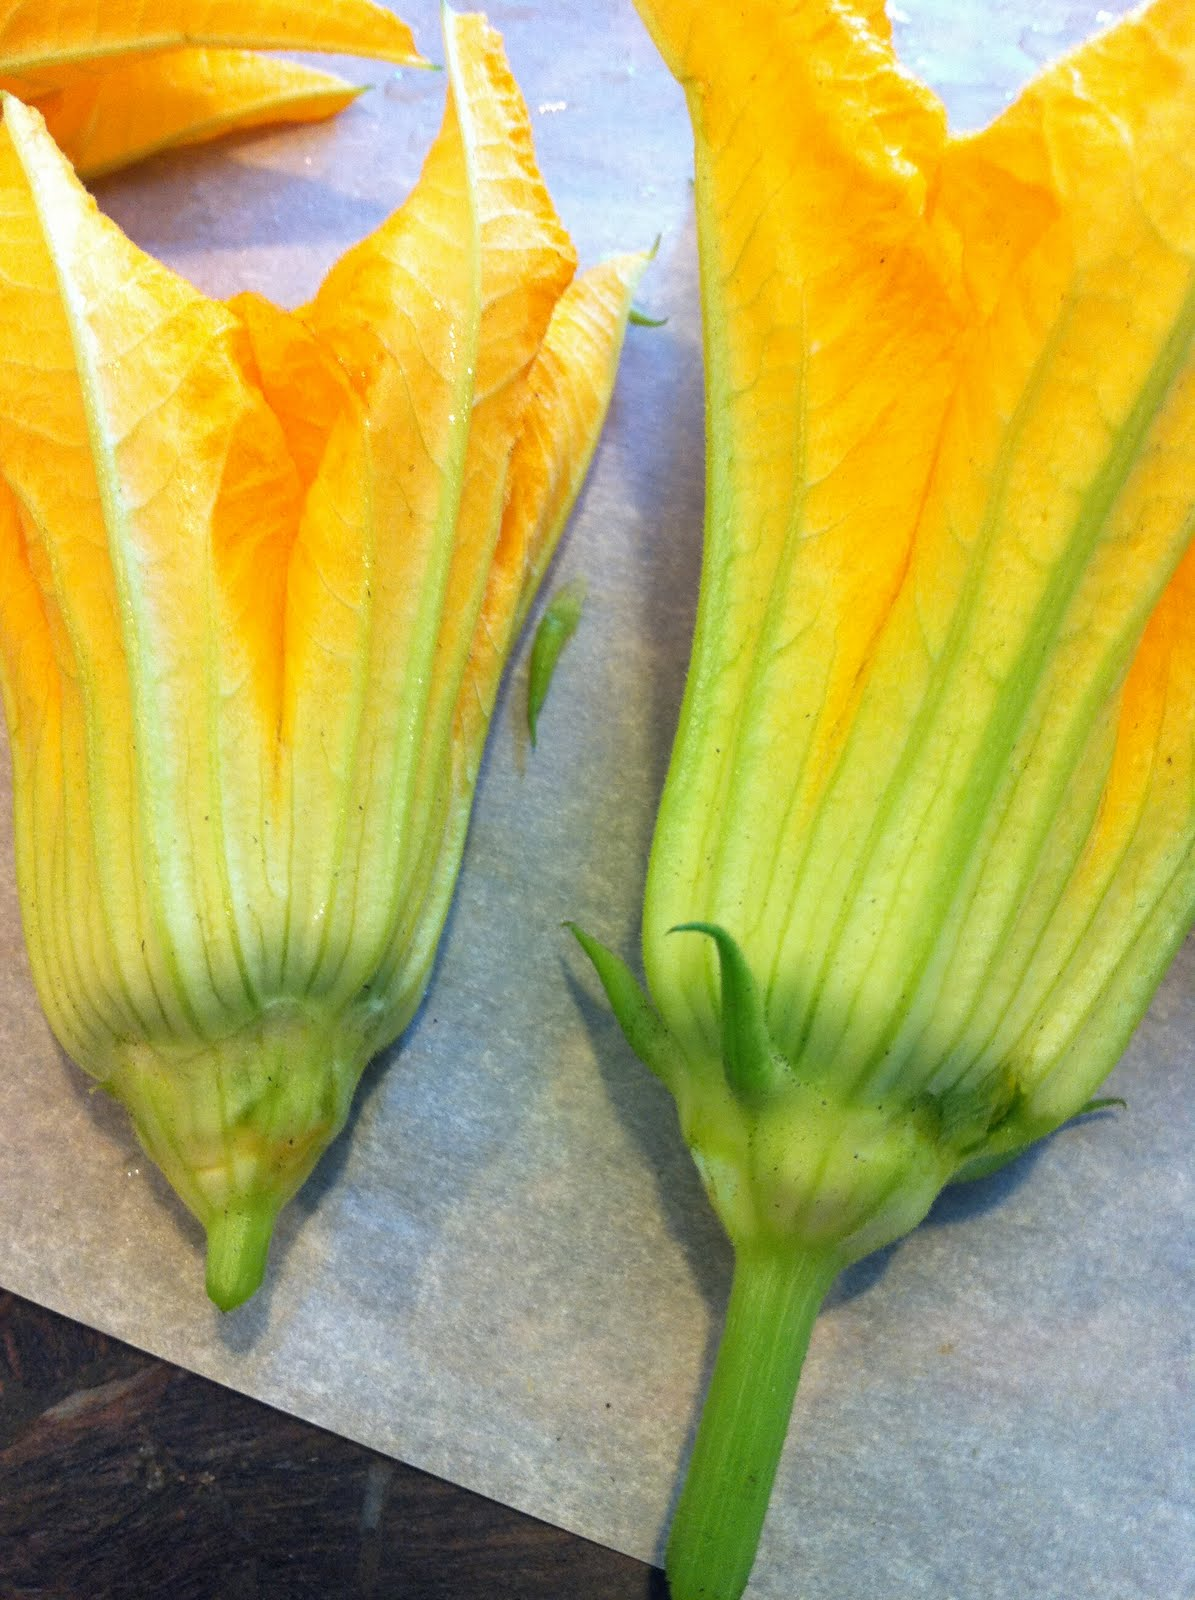 Stuff Zucchini Flowers With An Anchovy Filet And A Strip Of Mozzarella